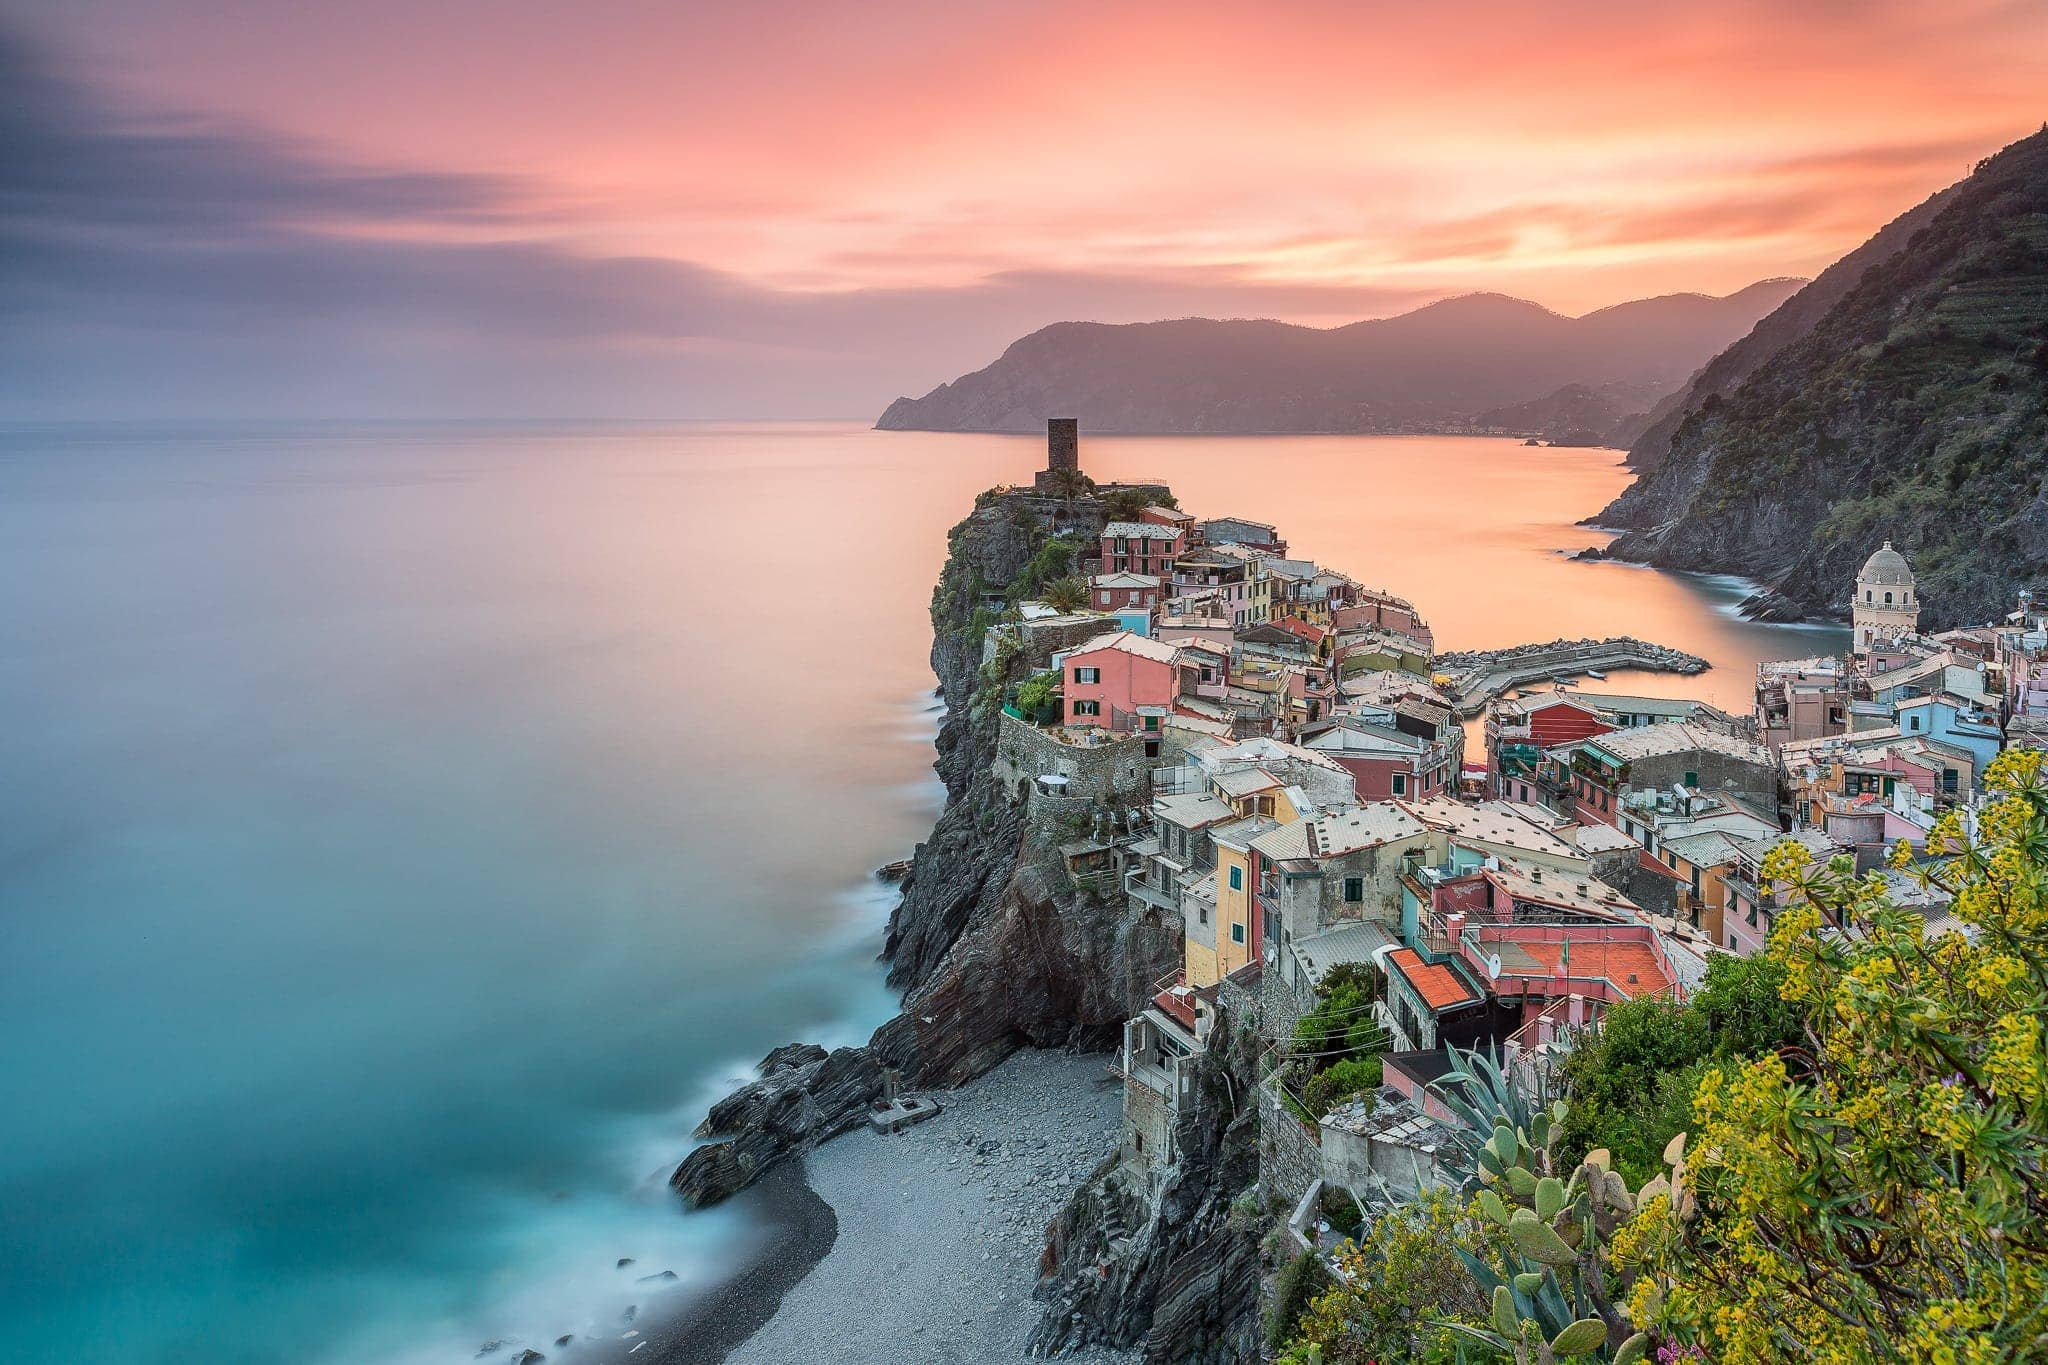 Francesco Gola Seascape Landscape Photography Vernazza Summer Breeze Sunset Cinque Terre Liguria Italy Long Exposure